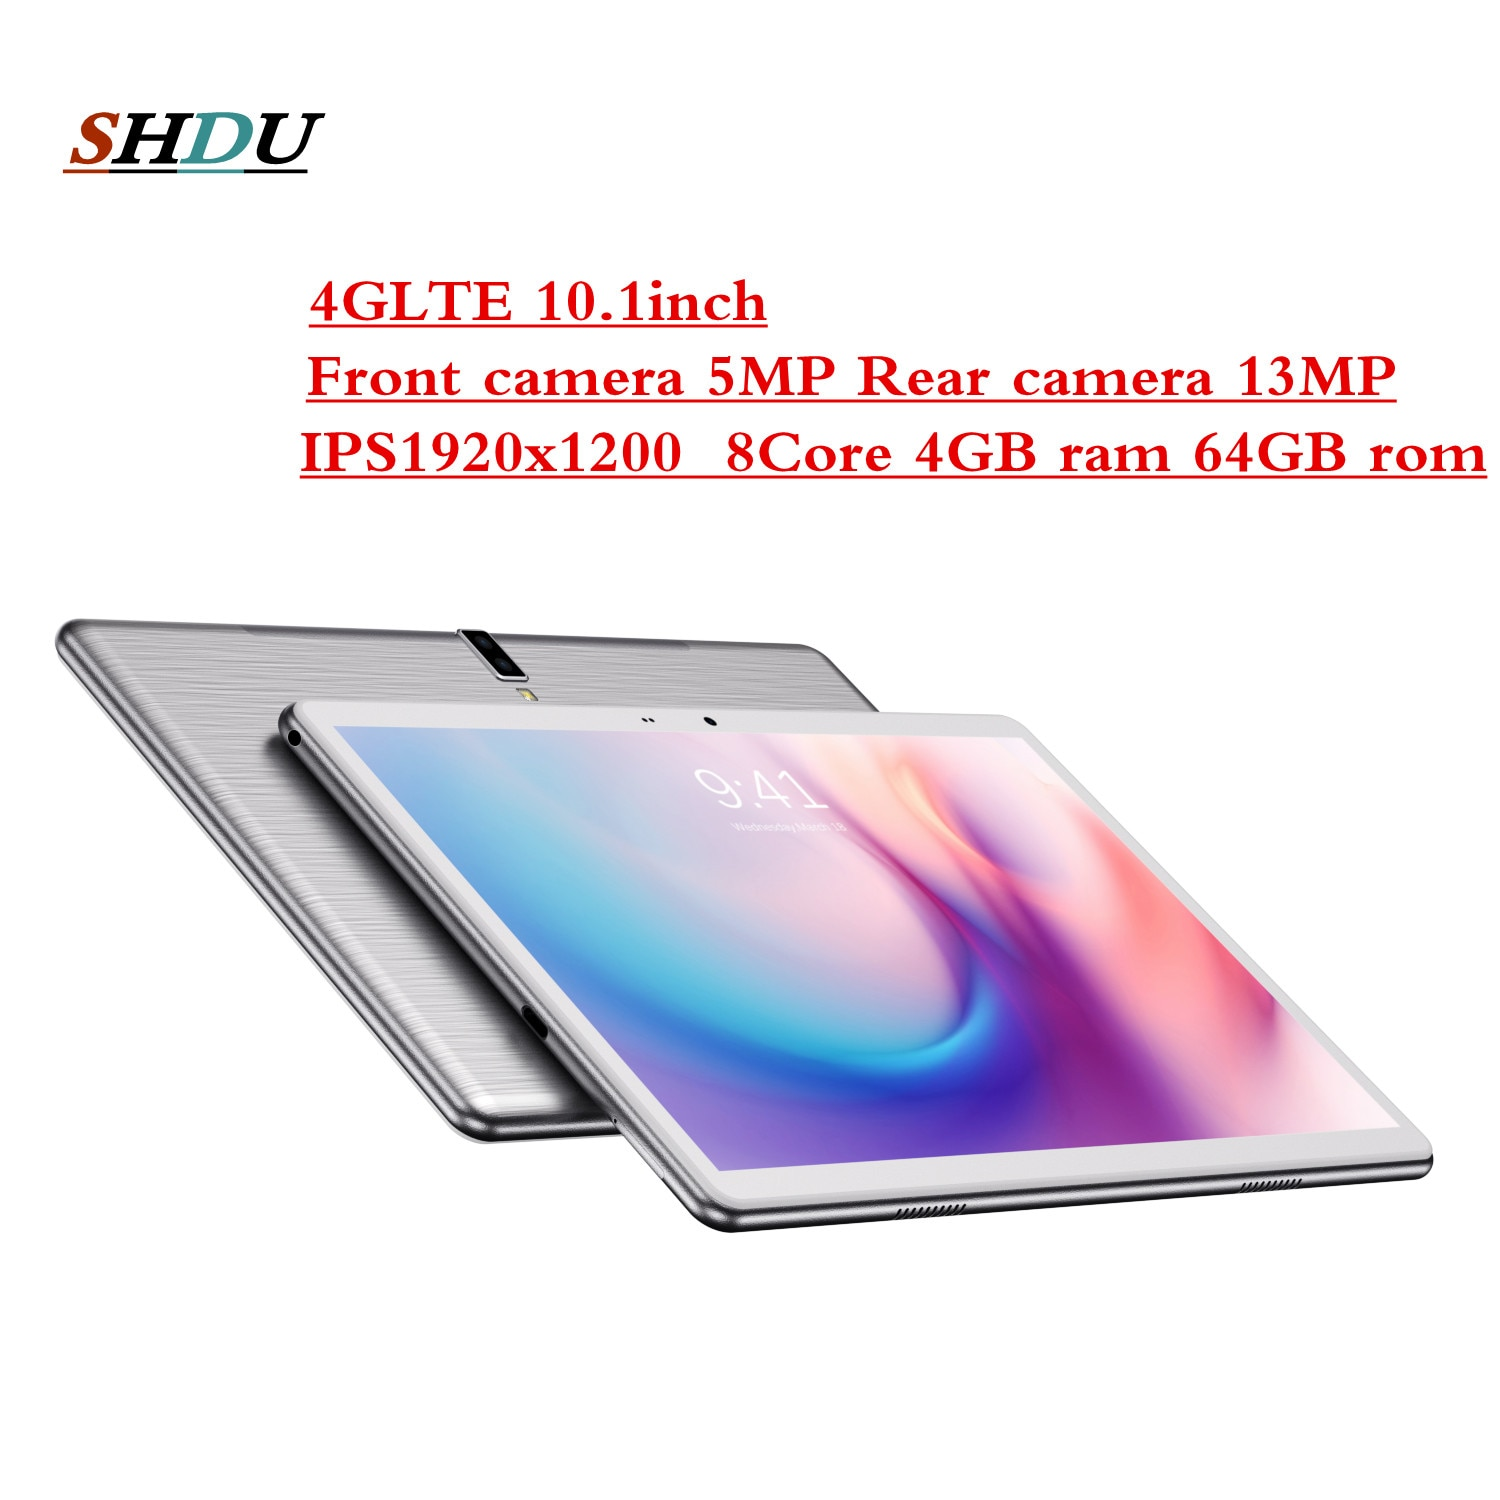 2021 New Tablet Pc 10.1 inch Android 10.0 Google Play 3G 4G Phone Call Tablets WiFi Bluetooth GPS Tempered Glass 10 inch Tablet